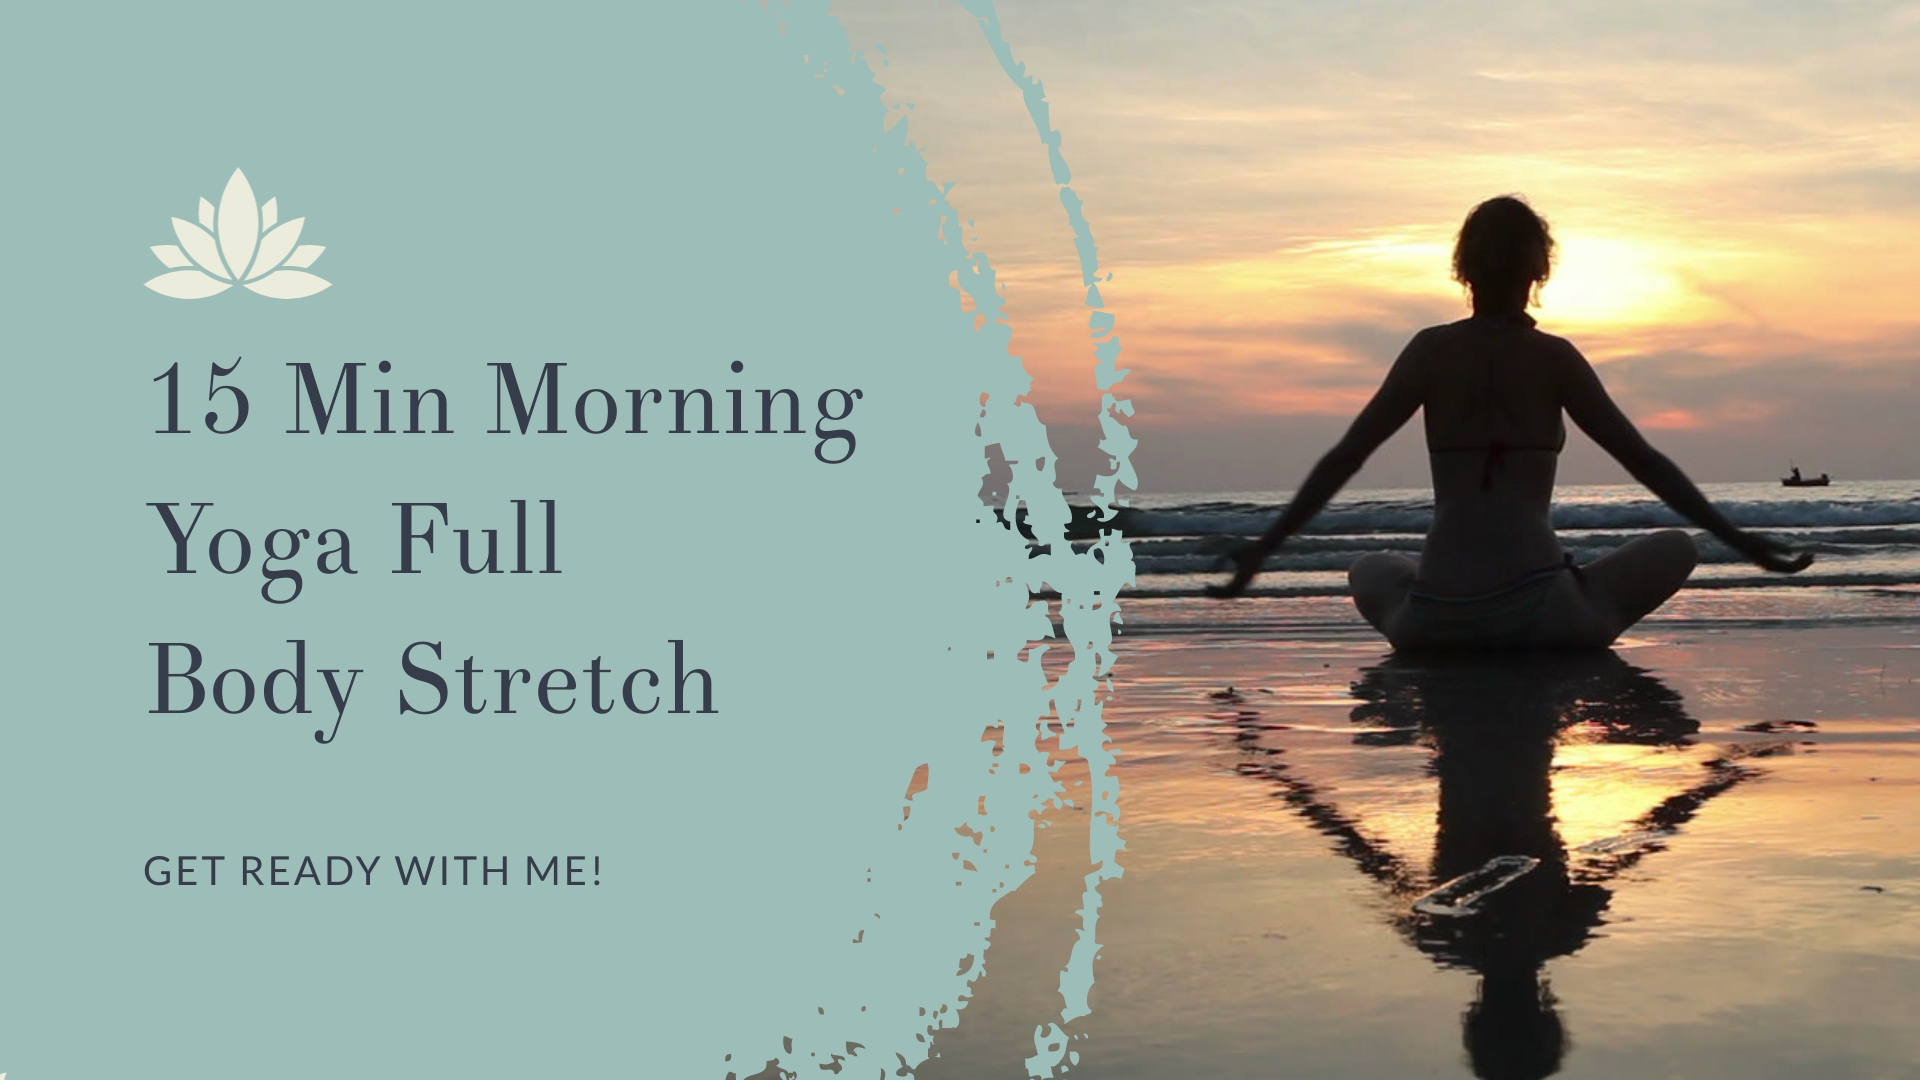 Morning Yoga Full Body Stretch Intro - Video Template